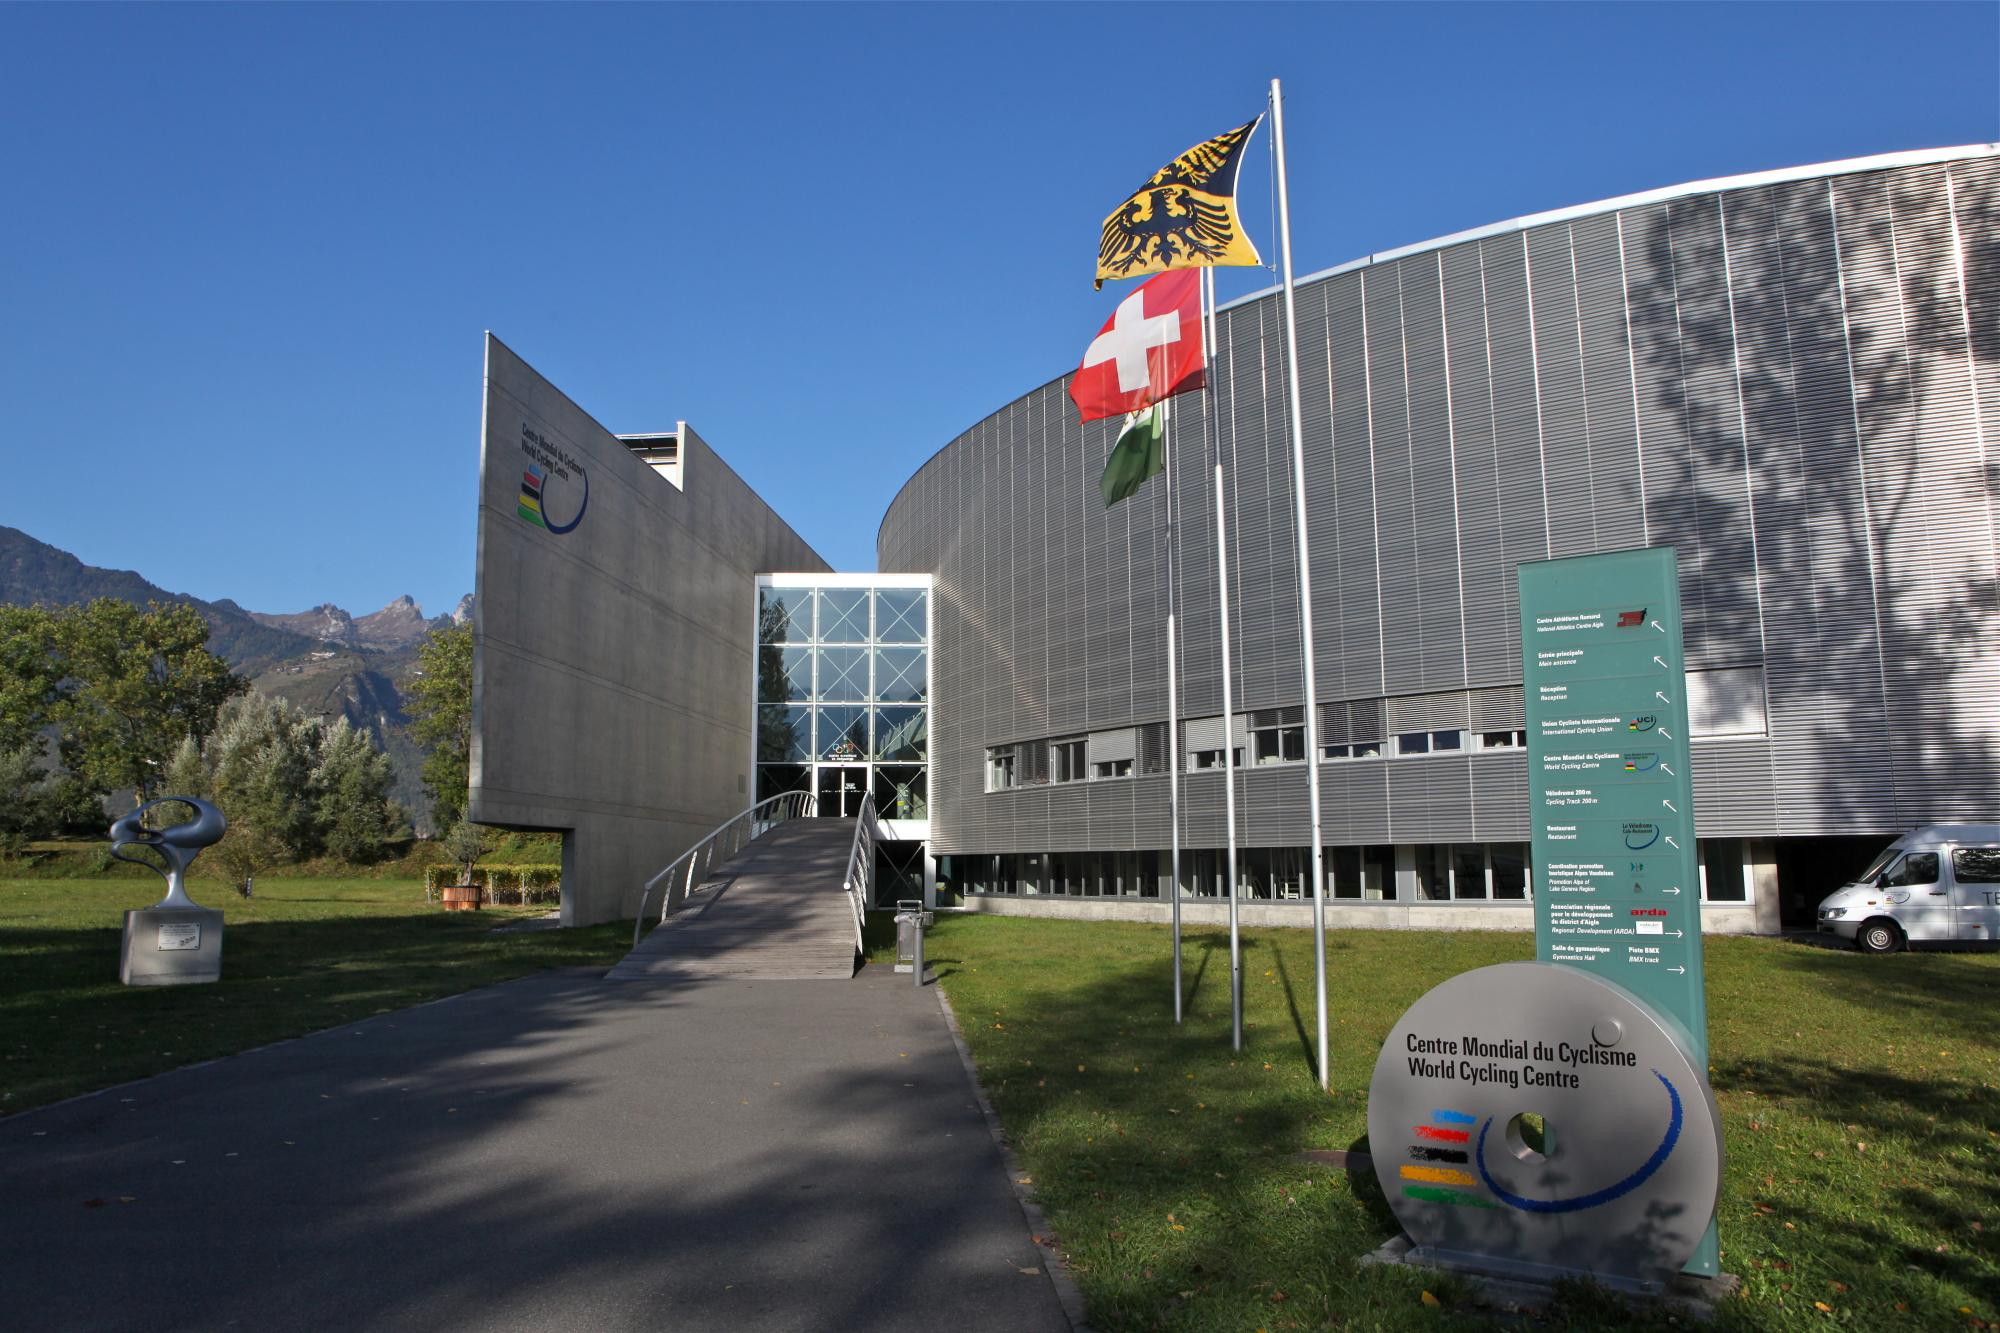 World Cycling Centre - Aigle